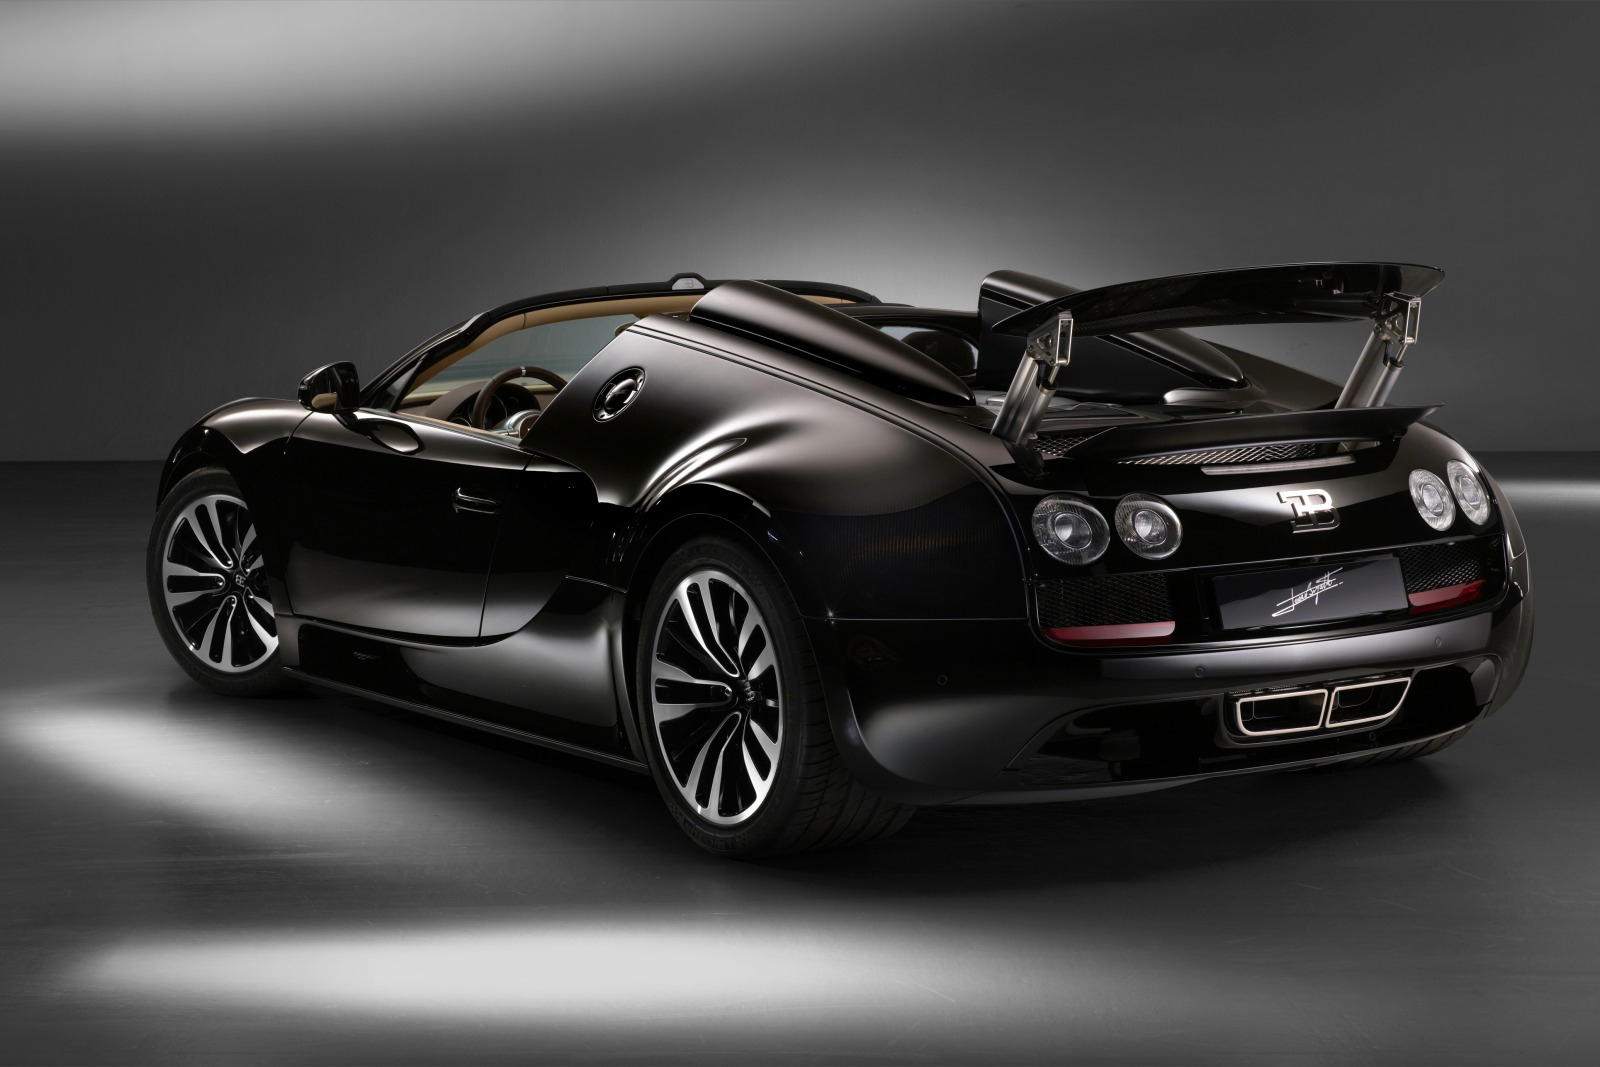 frankfurt 2013 bugatti veyron grand sport vitesse legend. Black Bedroom Furniture Sets. Home Design Ideas